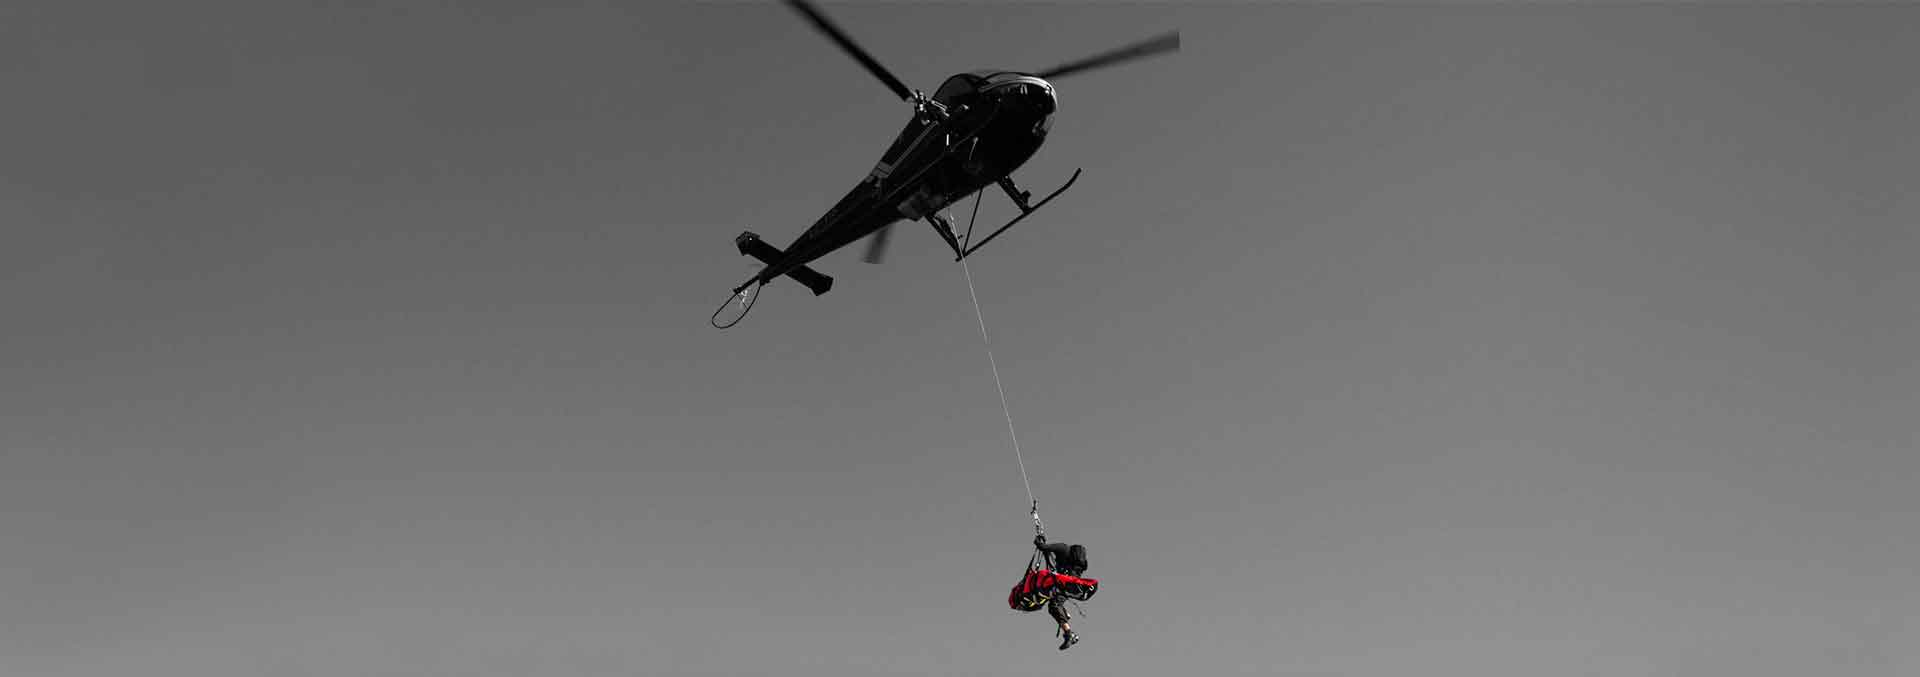 aERIAL rESCUE hELICOPTER